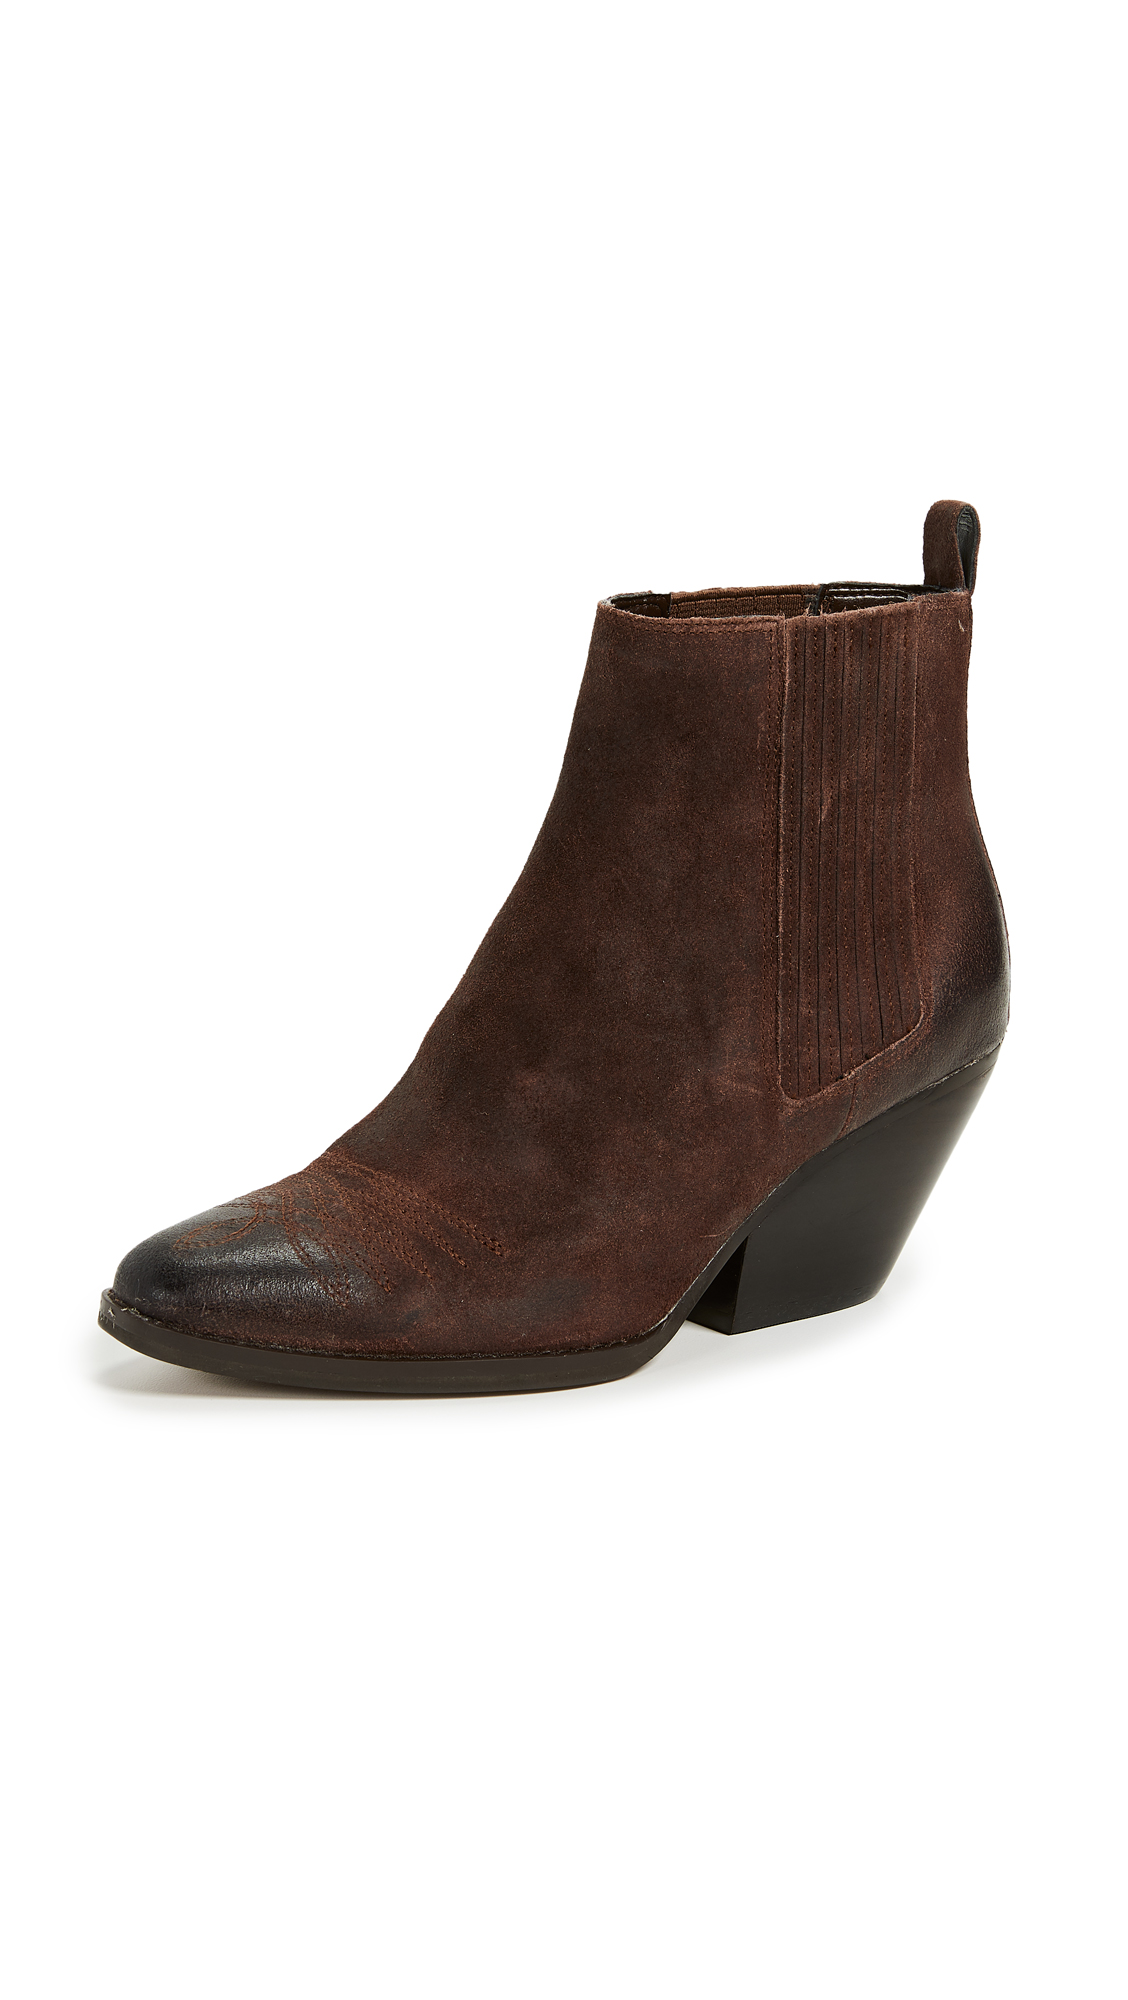 MICHAEL Michael Kors Sinclair Booties - Mocha/Gold